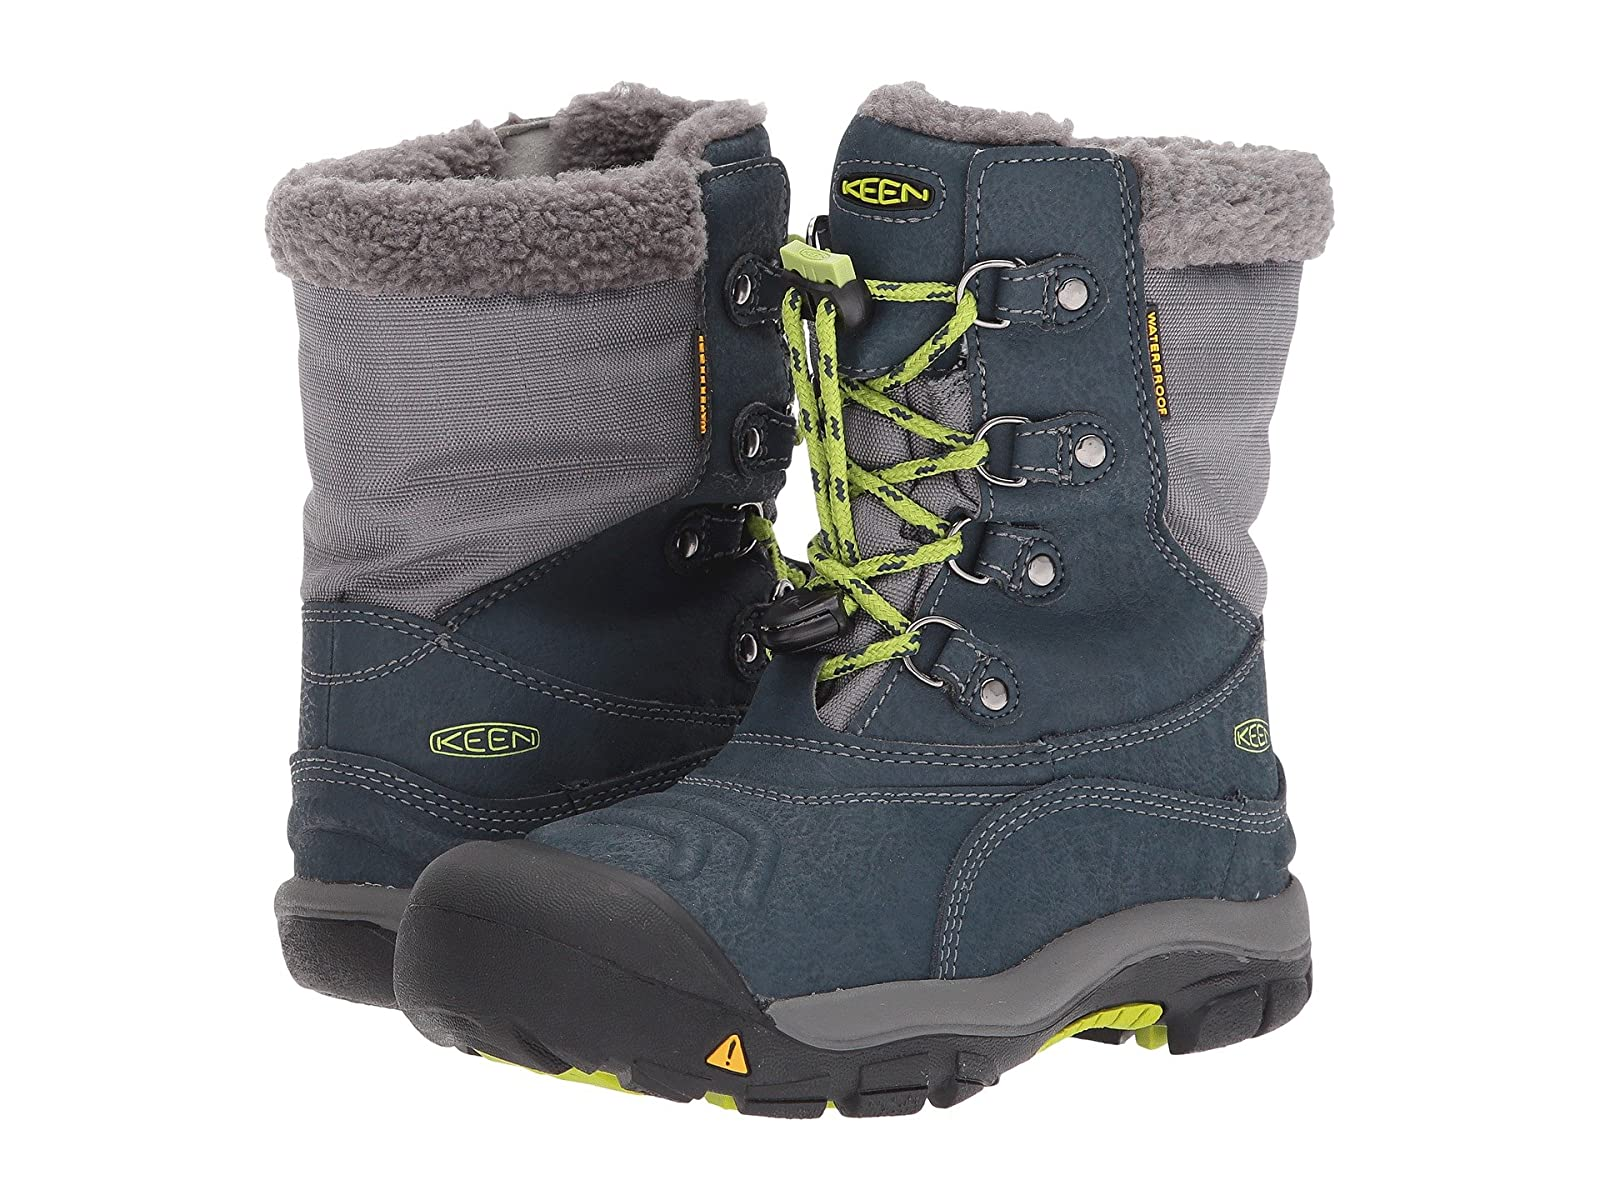 Keen Kids Basin WP (Little Kid/Big Kid)Cheap and distinctive eye-catching shoes